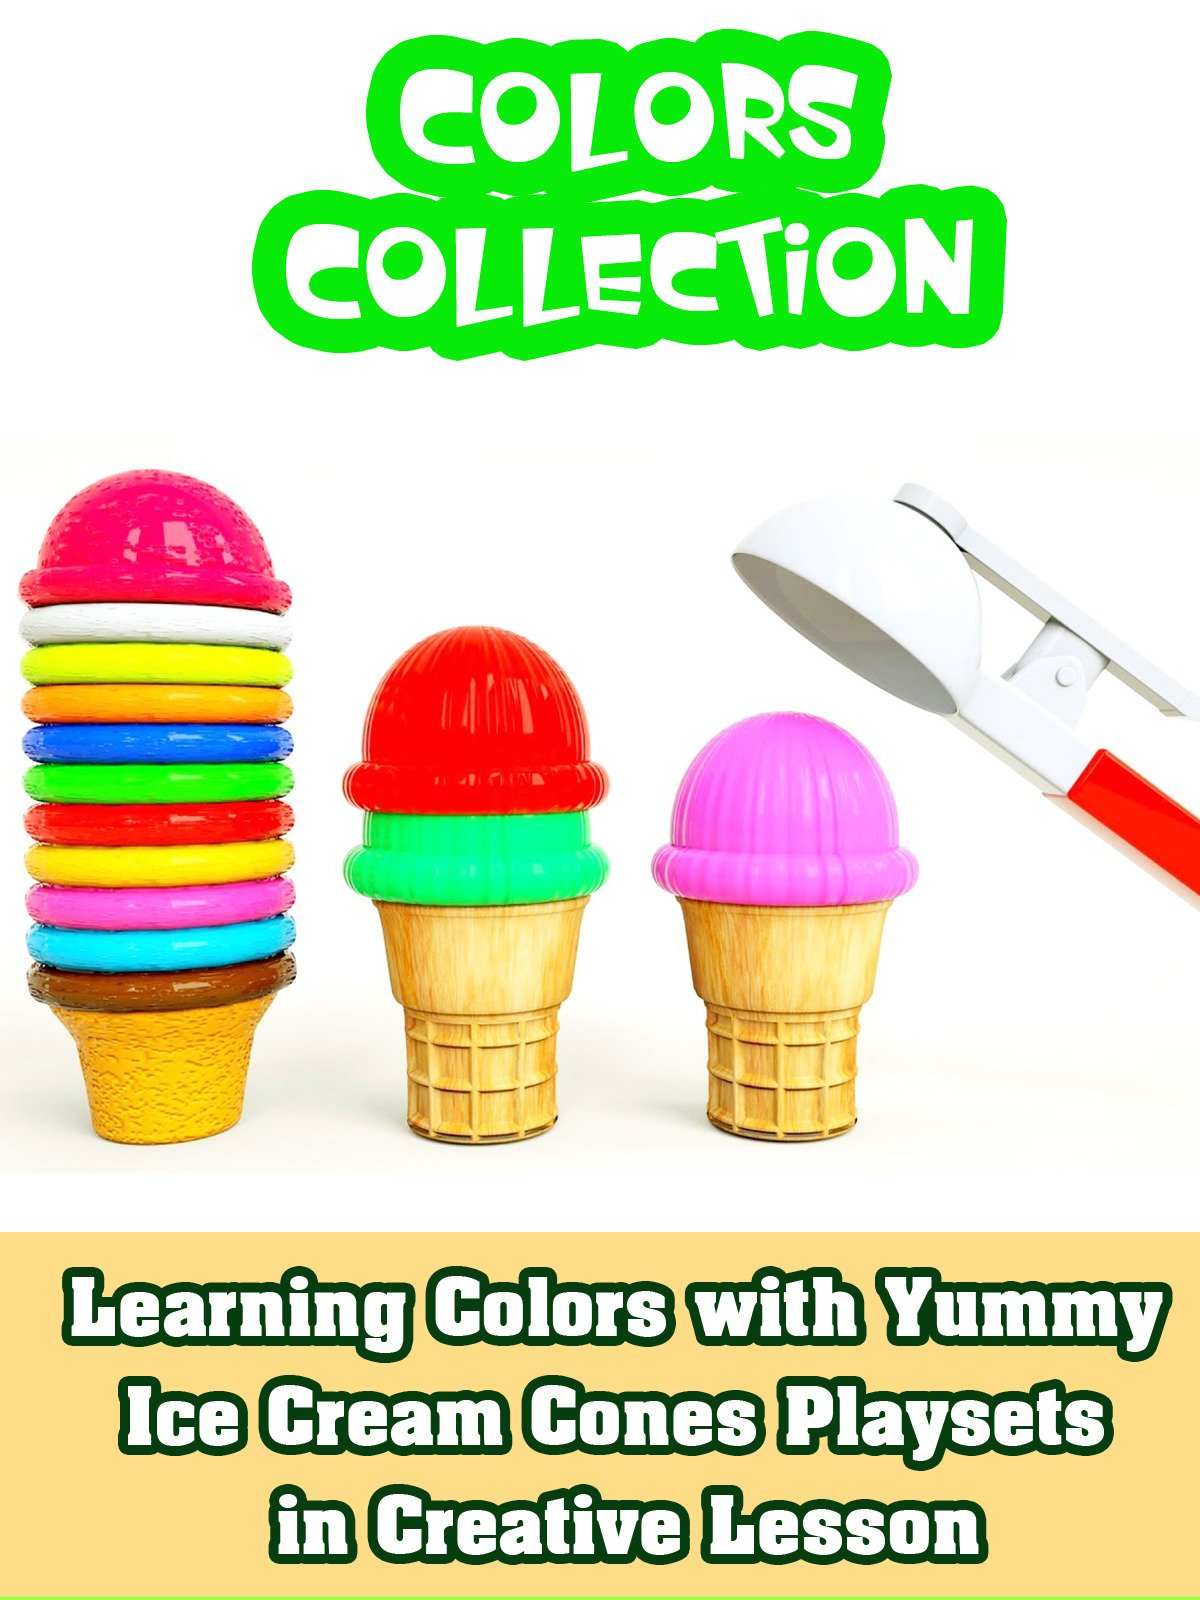 Learning Colors with Yummy Ice Cream Cones Playsets in Creative Lesson on Amazon Prime Instant Video UK